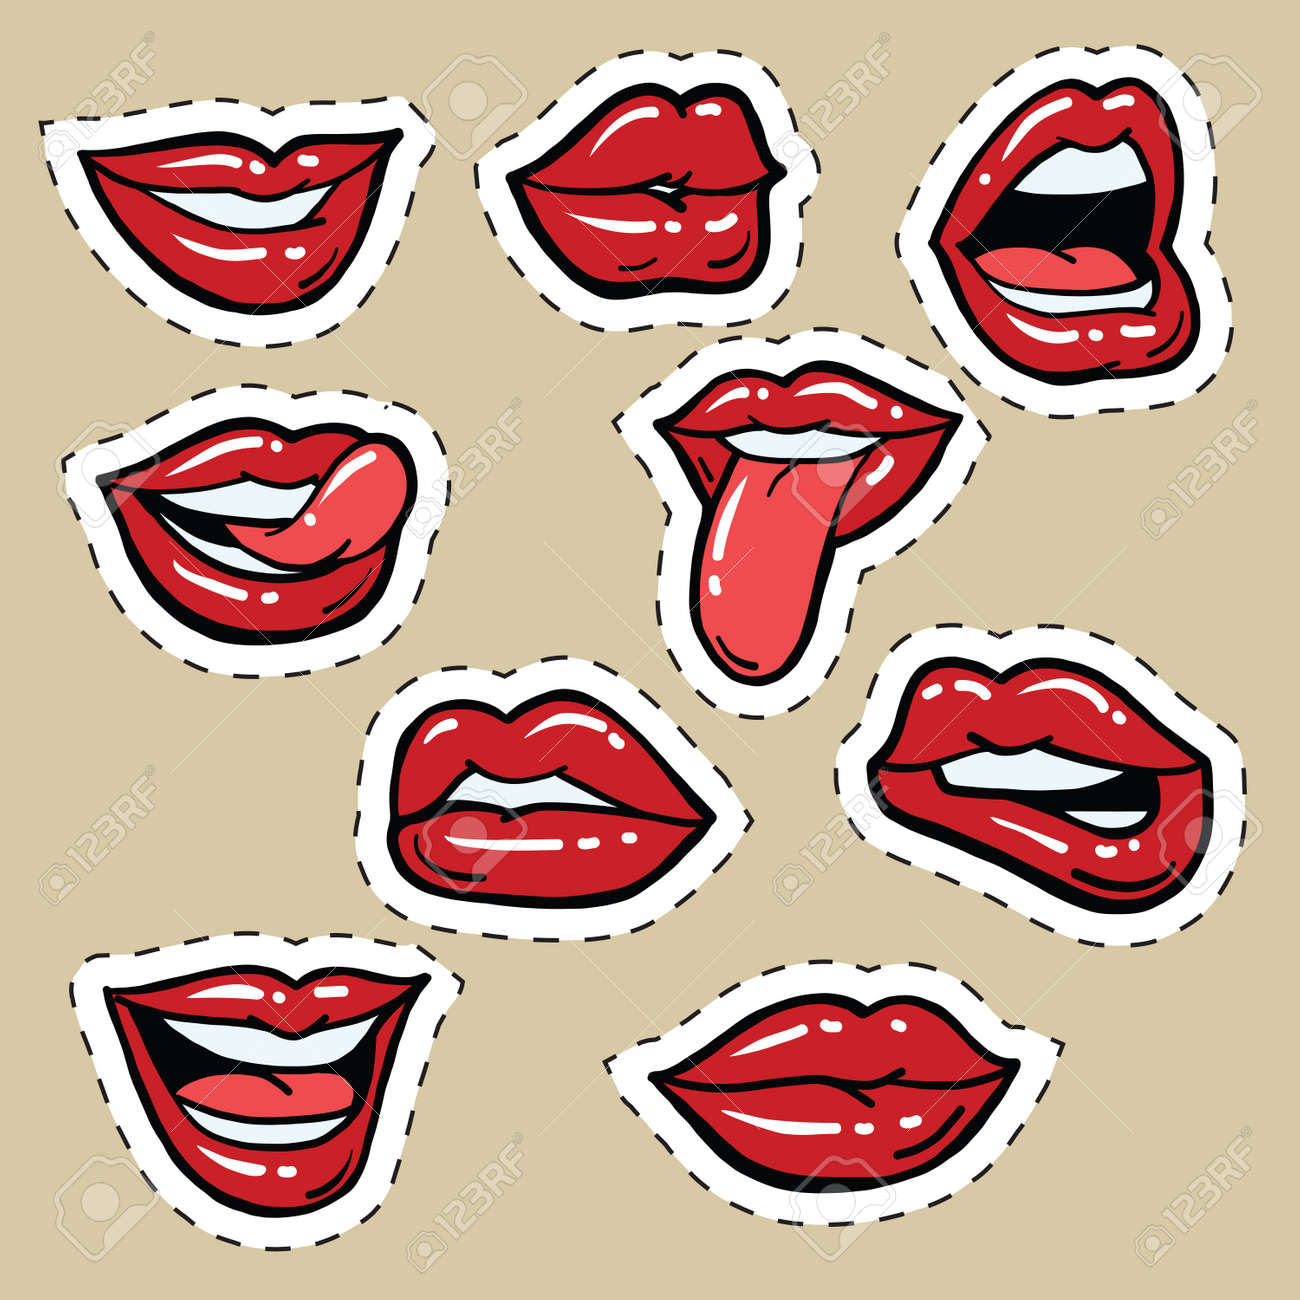 set of red female lips and tongue pop art comic illustration rh 123rf com Funny Eyes Clip Art Cute Lips Clip Art